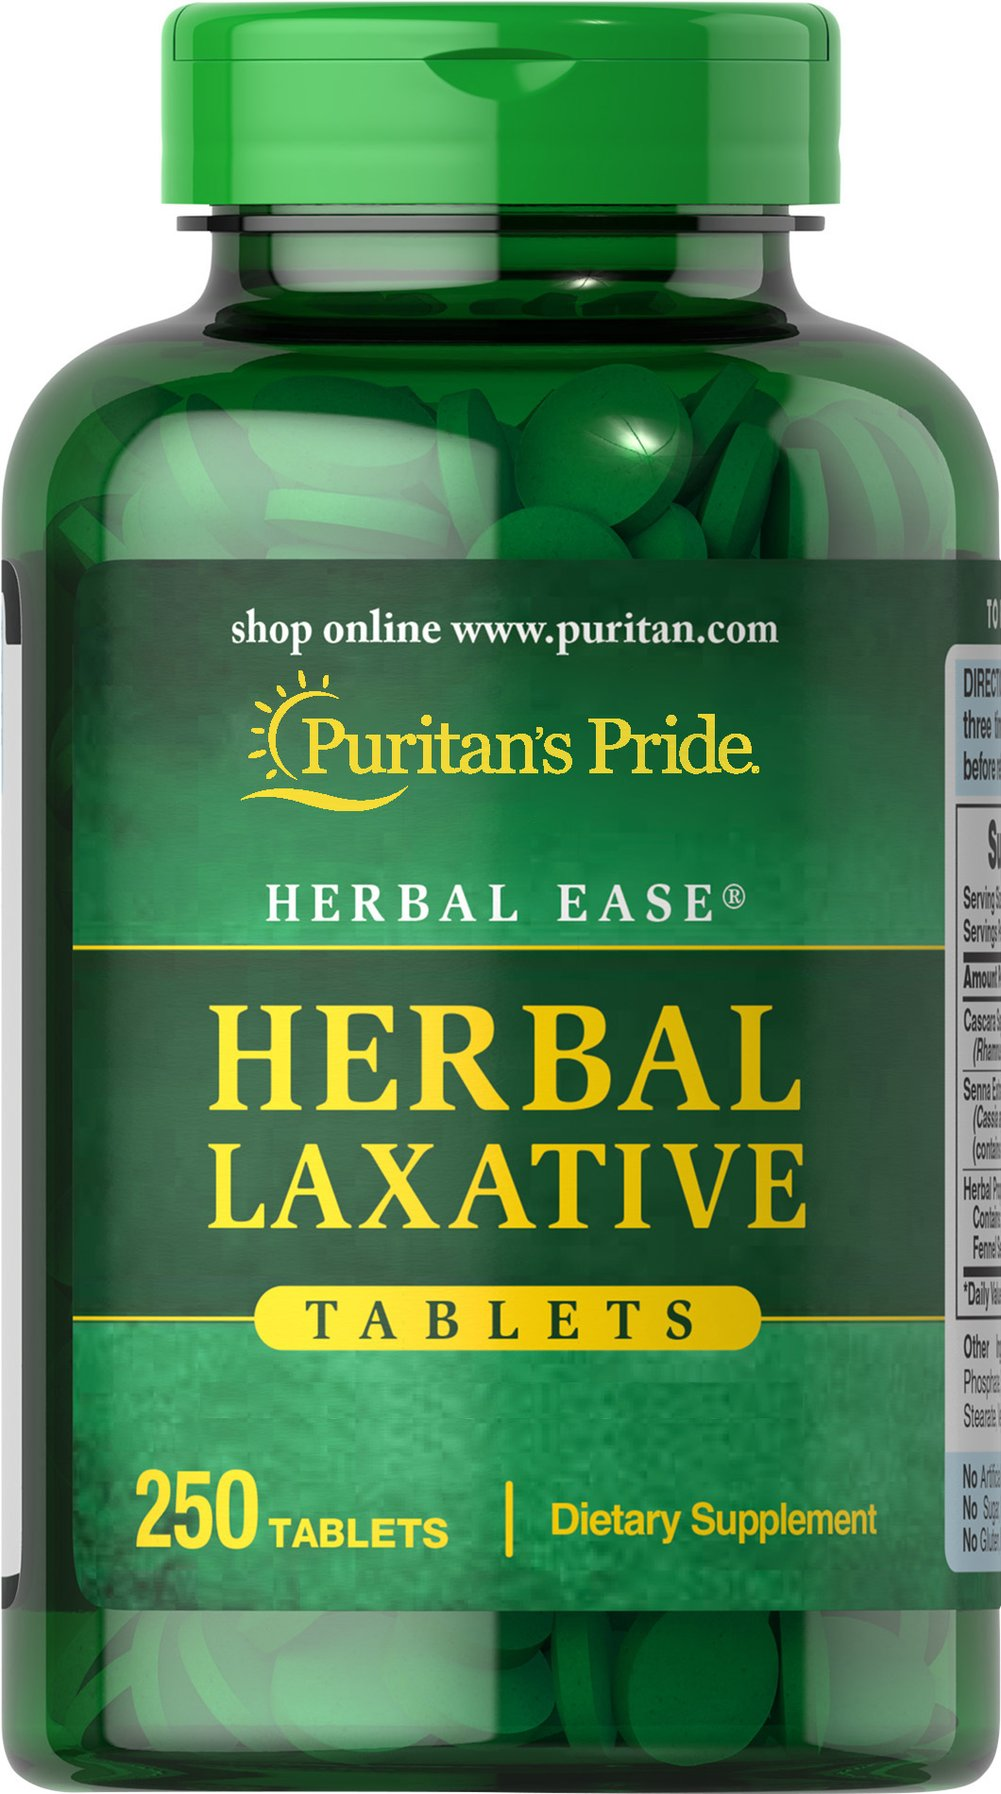 Herbal Laxative <p><b>Herbal Laxative</b> Tablets are an all-natural laxative designed for the relief of occasional constipation.** Our formula brings together the holistic properties of Cascara Sagrada and Senna, two popular herbals that help promote regularity.**</p><p>Herbal Laxative Tablets contain no harsh synthetics, to assure gentle, yet efficient, relief.**</p> <p>Also available in Capsules. See items 2180, 2183 and 2185.</p> 250 Tablets  $